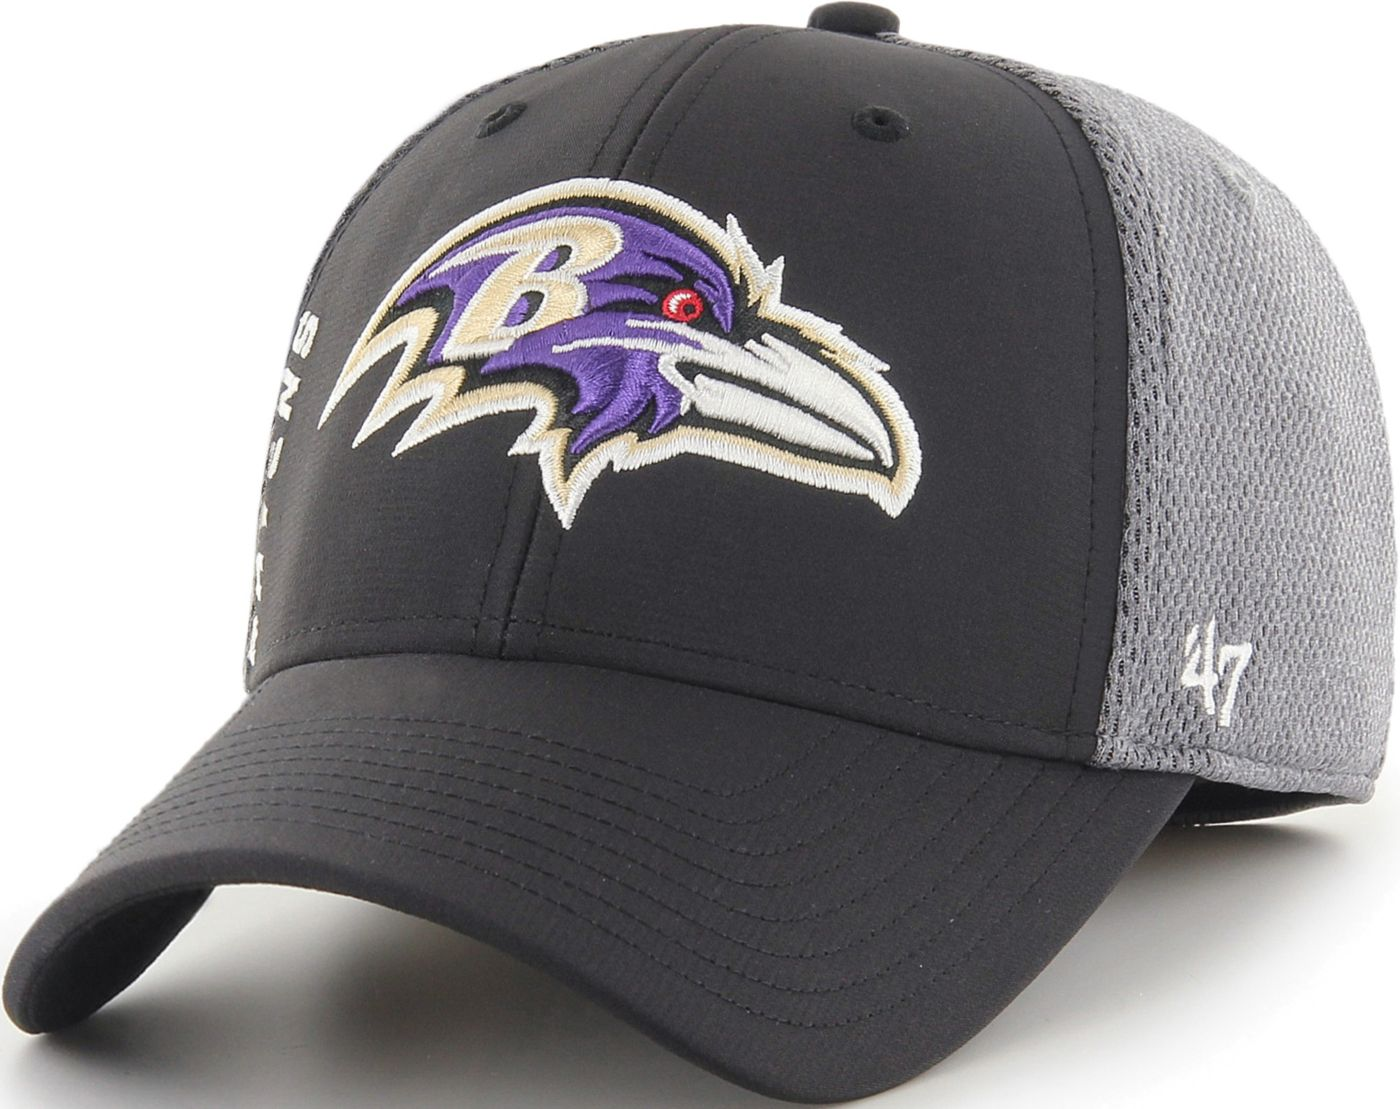 '47 Men's Baltimore Ravens Wycliff Contender Stretch Fit Black Hat